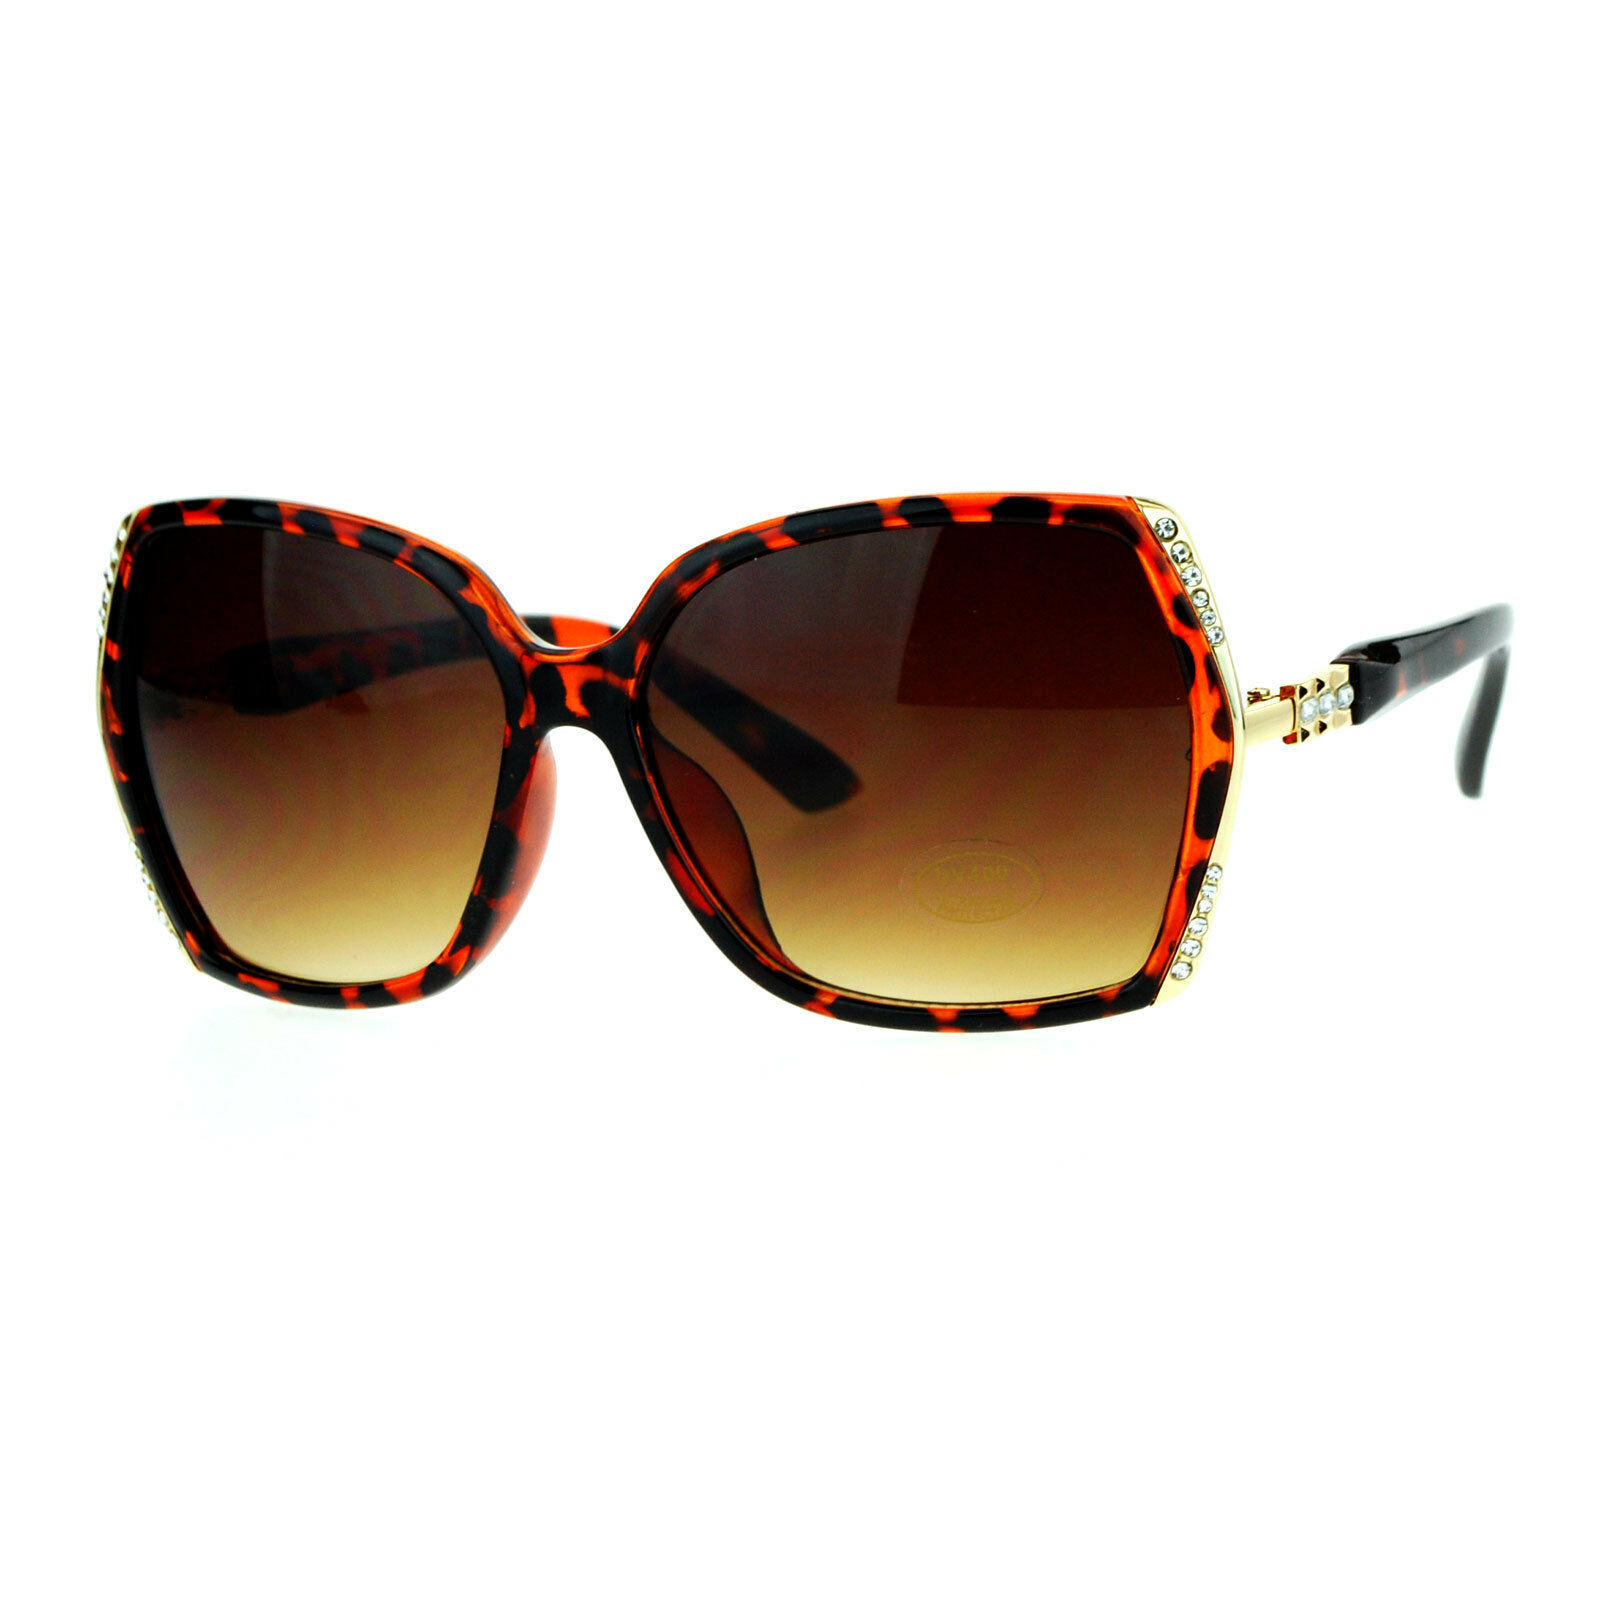 Womens Fashion Sunglasses Square Frame Rhinestones Design UV 400